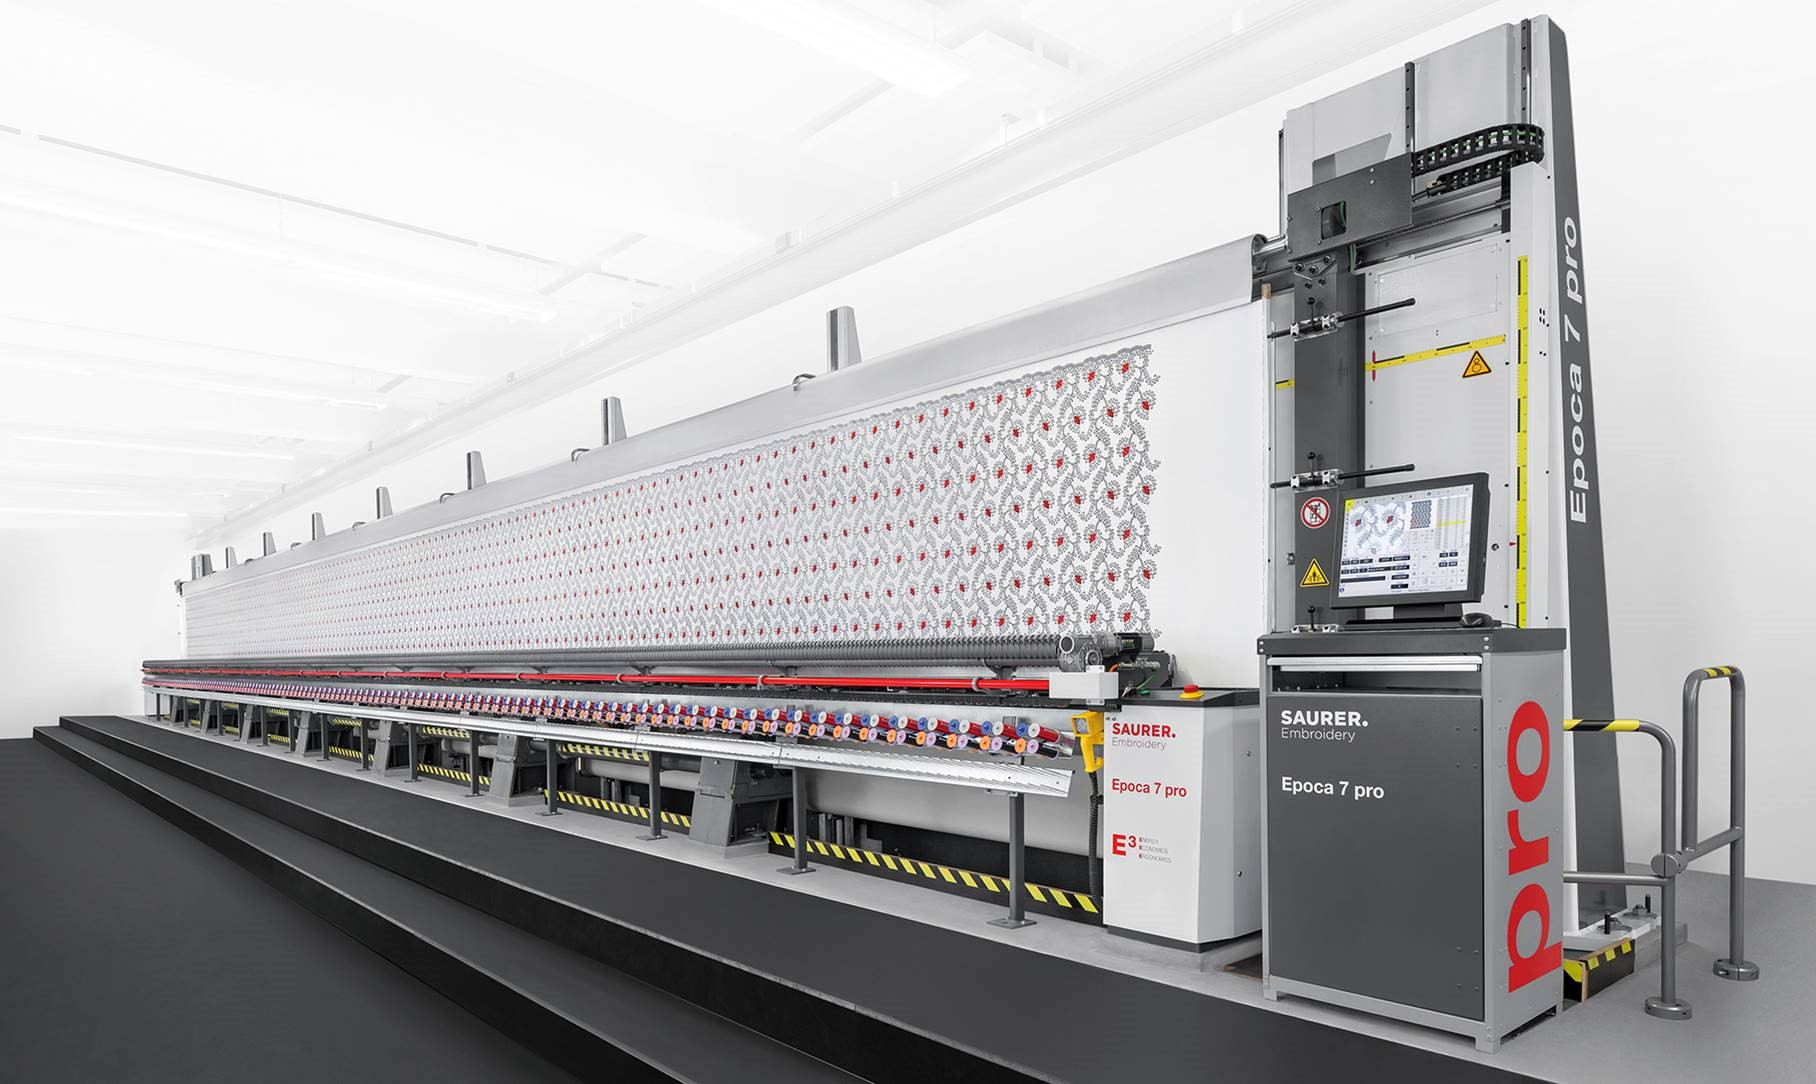 Saurer at ITMA 2019 – discover how we power creation